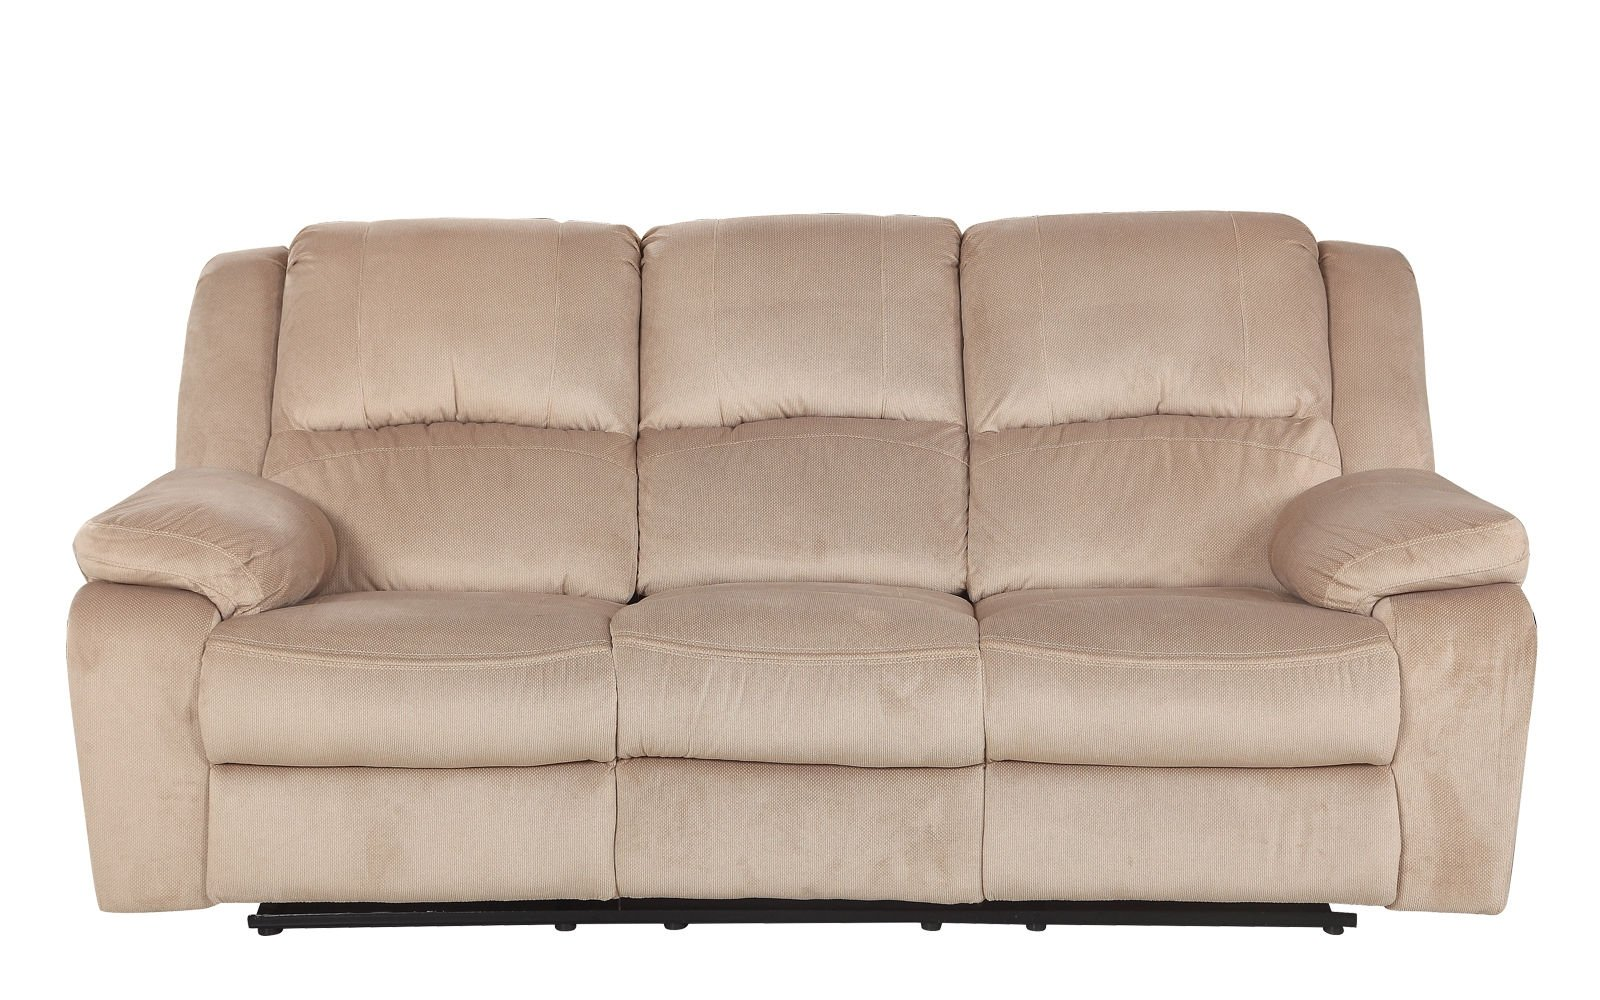 Details About Double Recliner Sofa Living Room Microfiber Reclining 3 Seater Beige